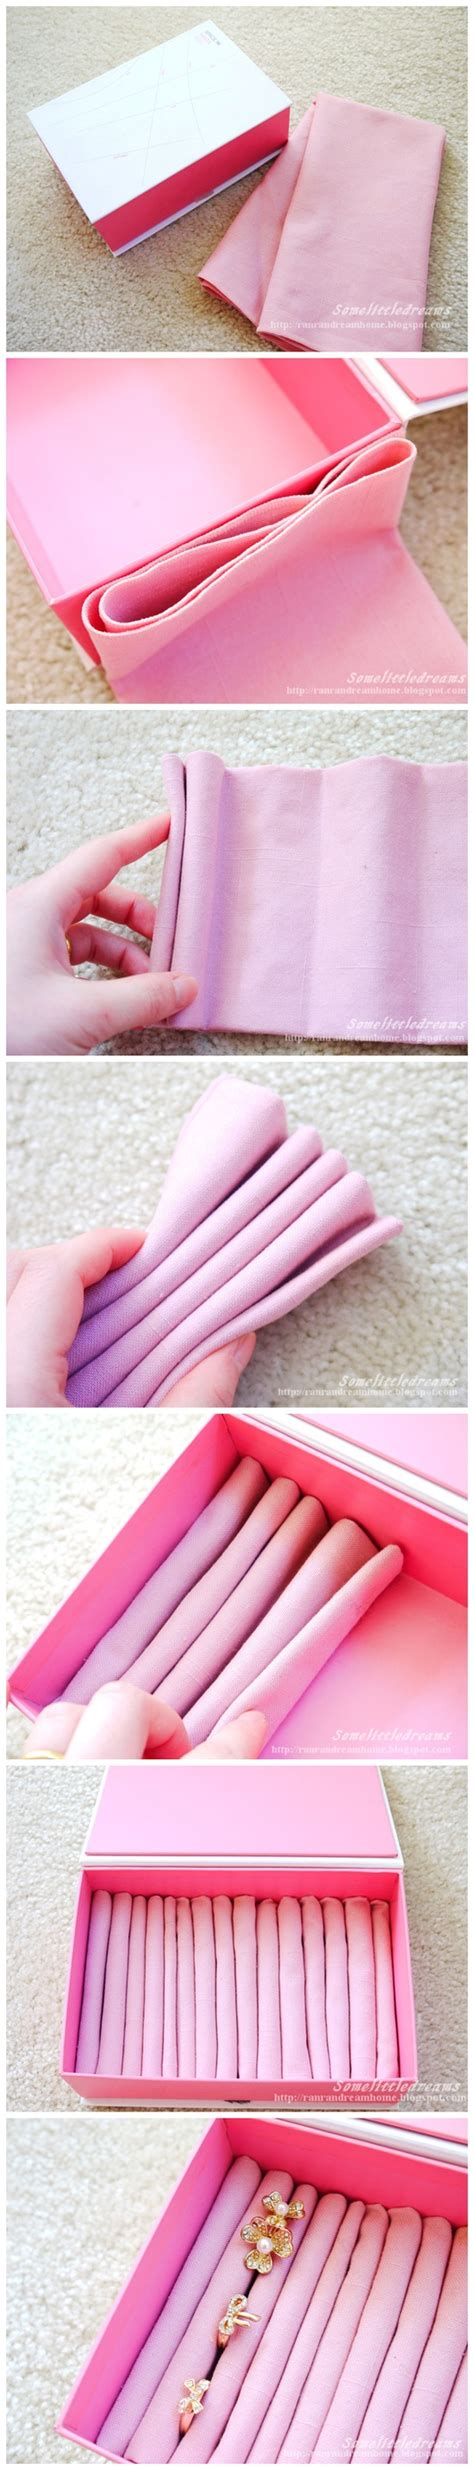 how to make a photo box for jewelry make any keepsake box into an awesome jewelry box fabdiy